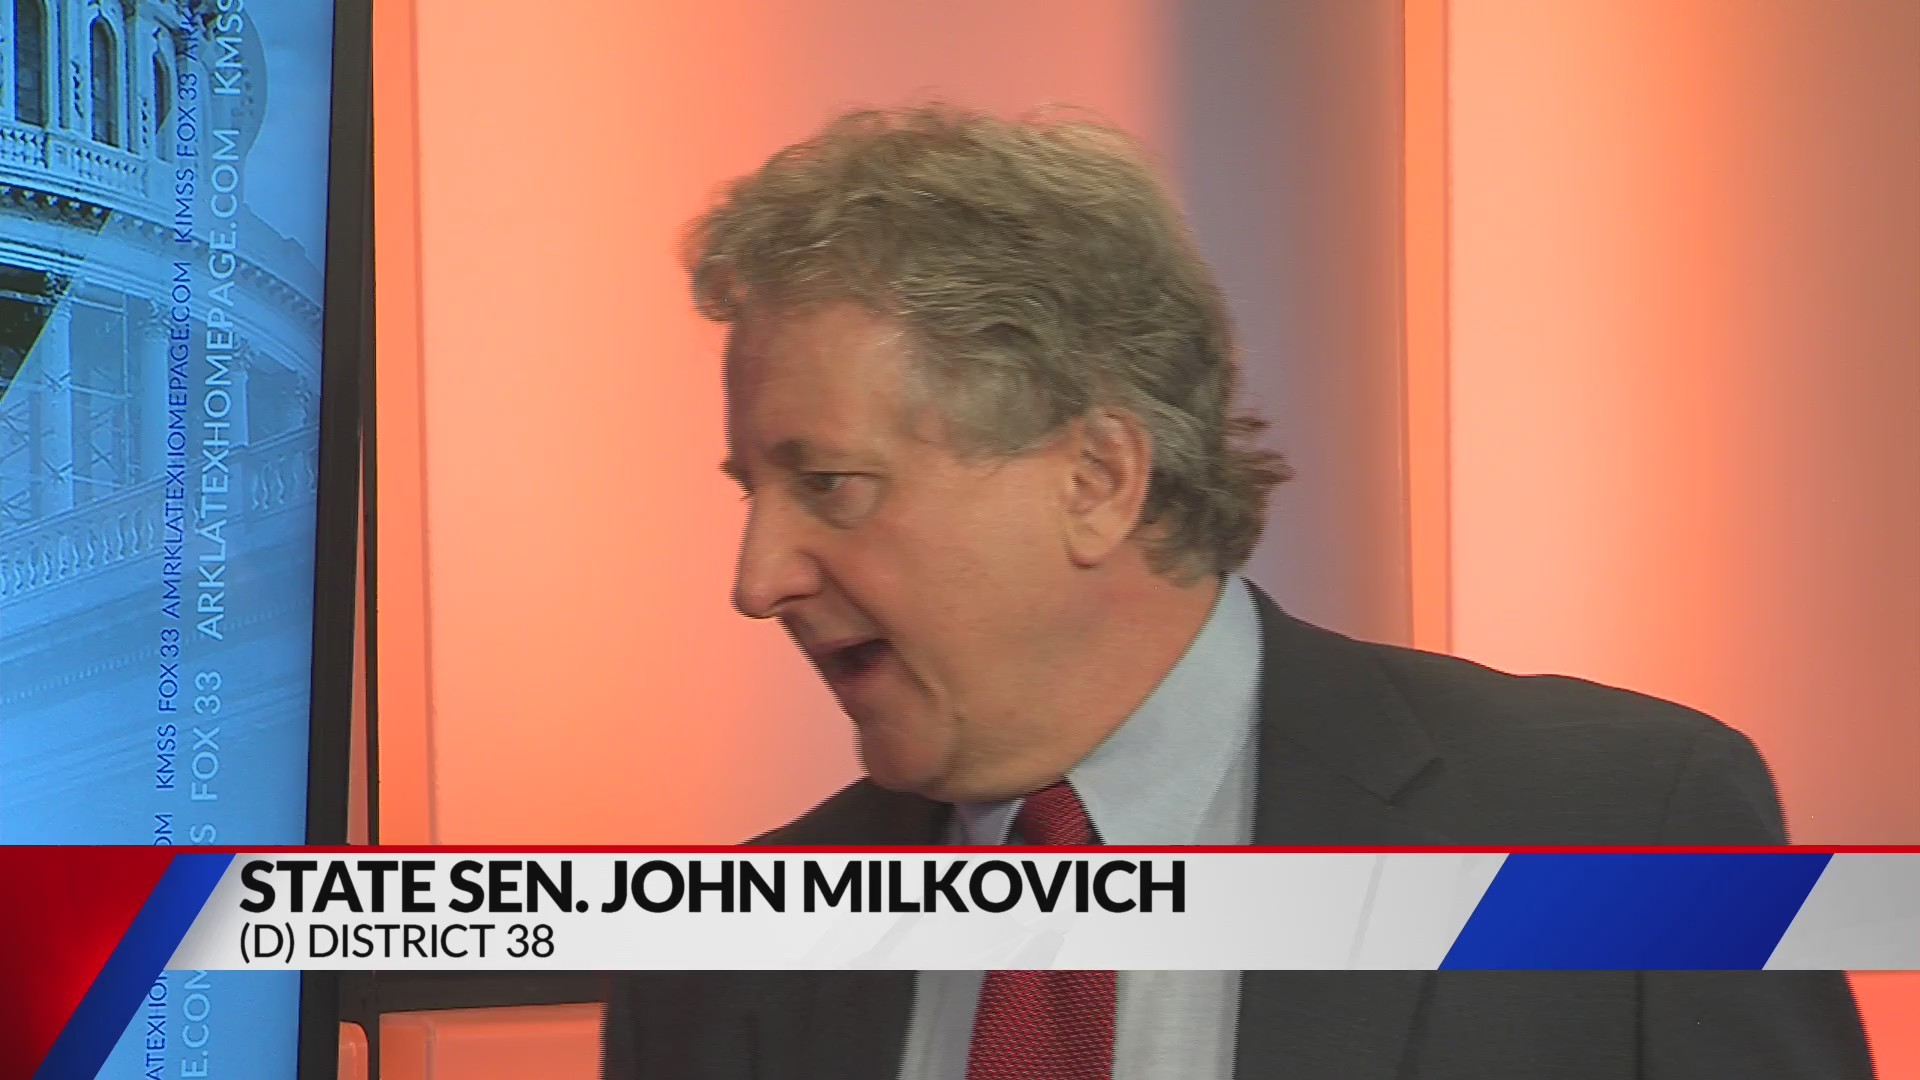 State Sen. Milkovich on upcoming session FOX